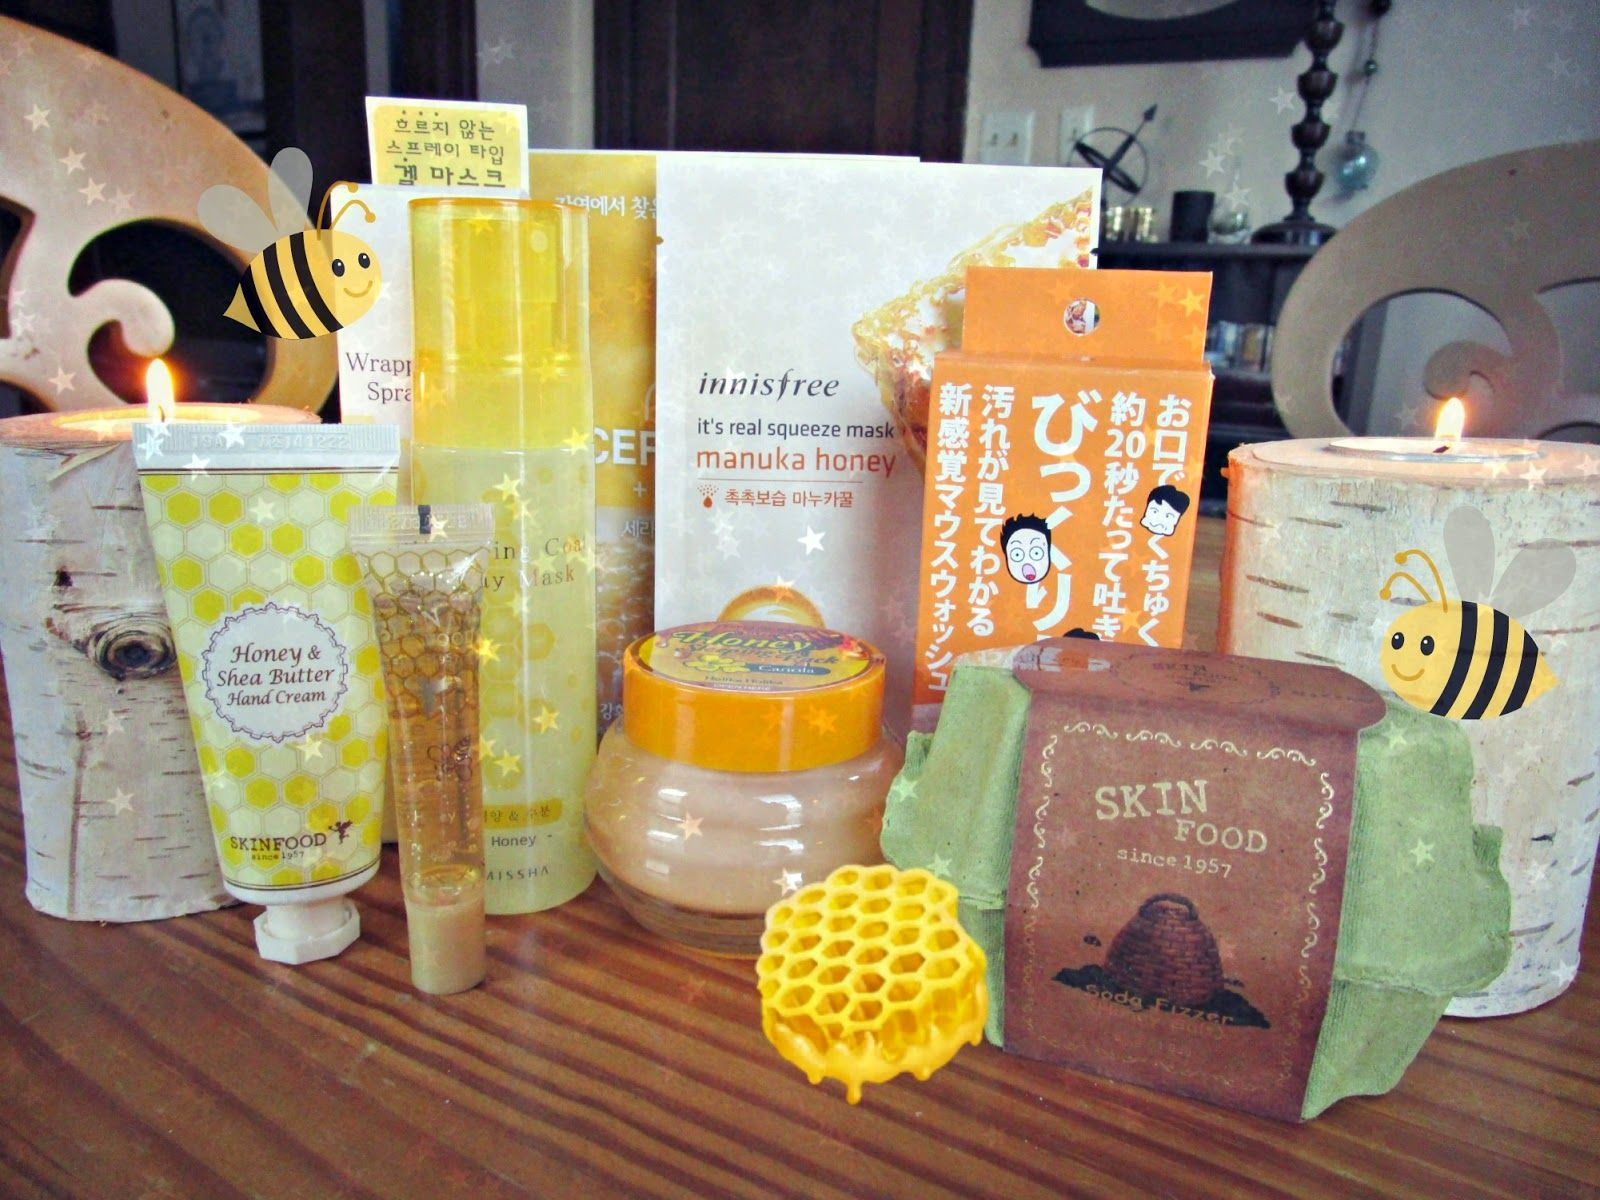 Harlot Beauty: #Beauteque Classics Blogger Series: Oh Honey! Beauty Bag with Harlot Beauty Review and #Giveaway! #kbeauty